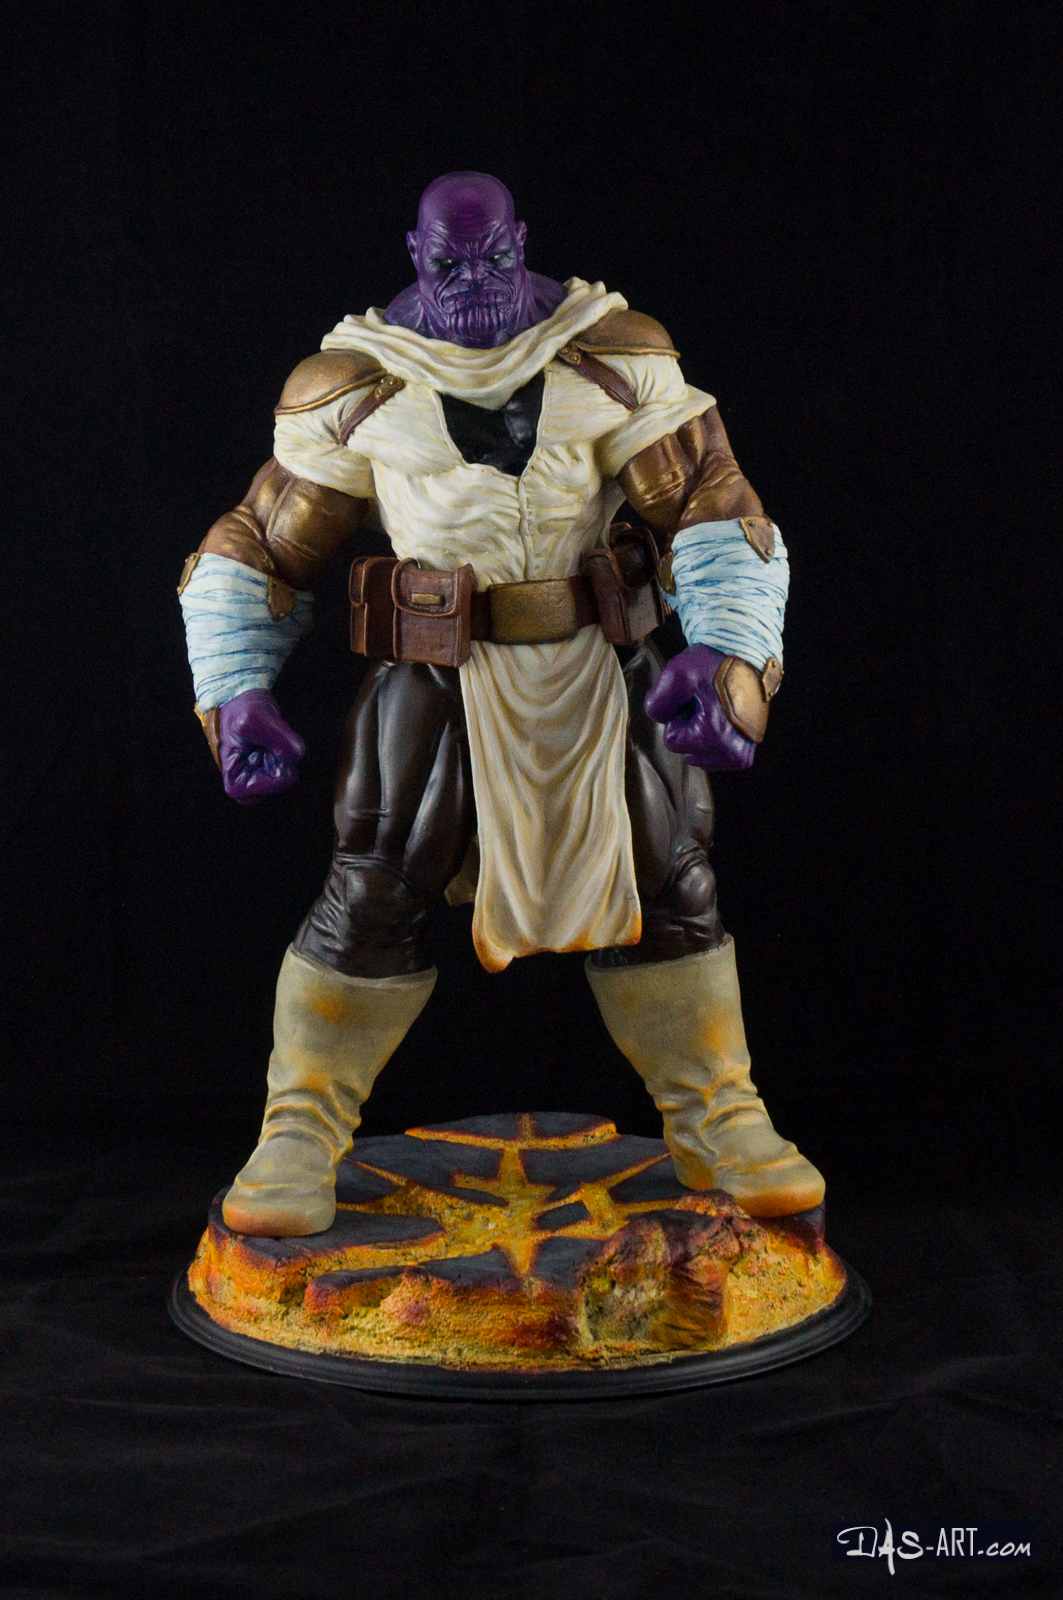 [GK painting #19] Thanos statue - 001 by DasArt